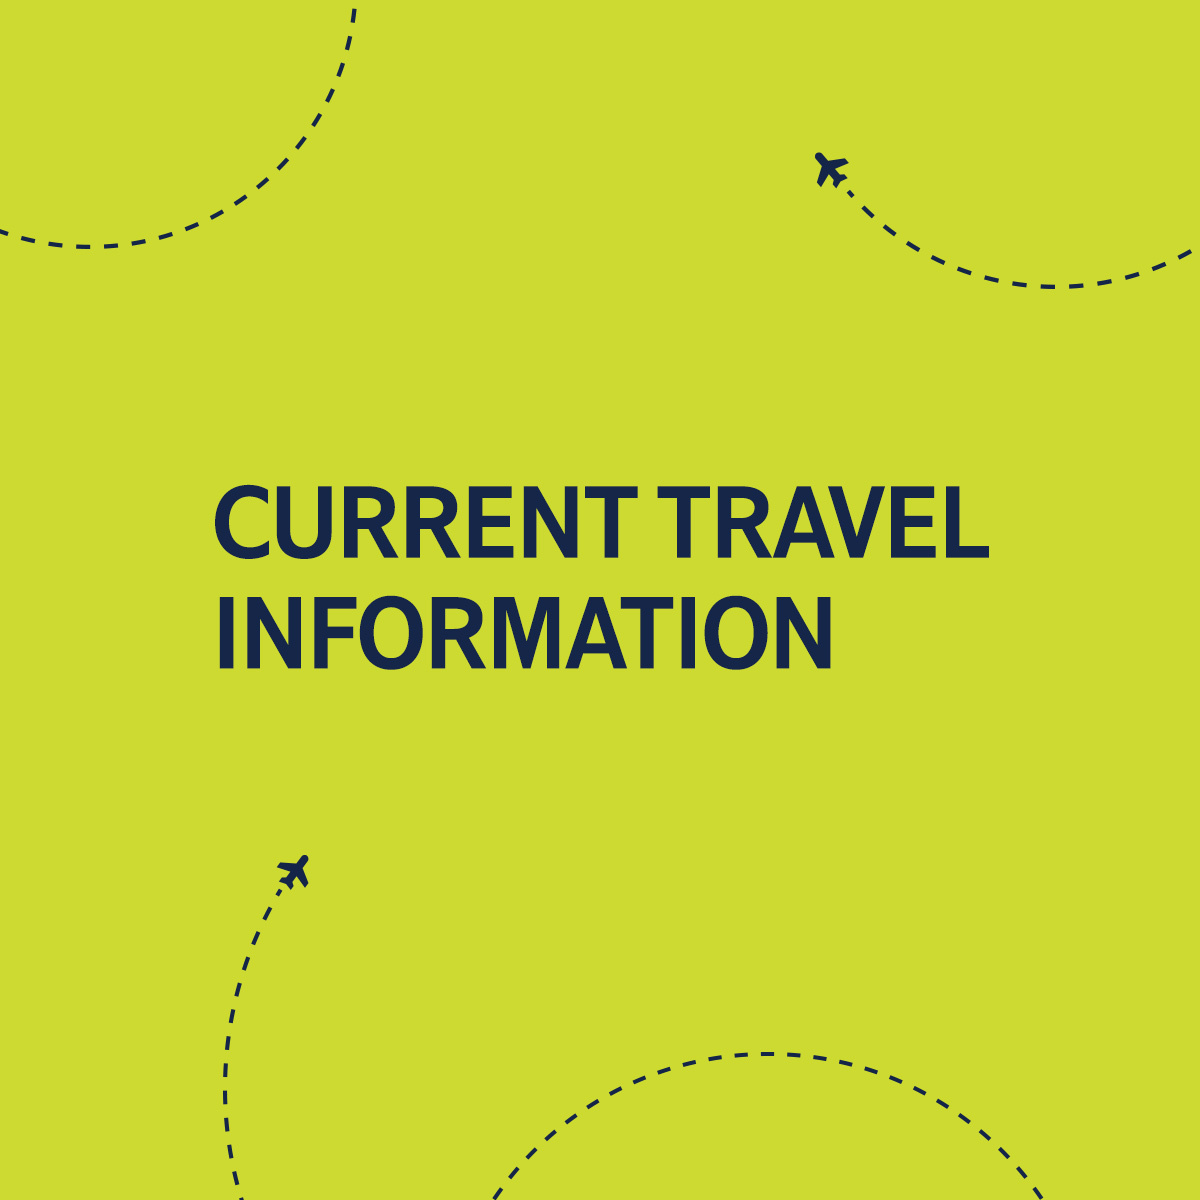 Current airBaltic travel information image